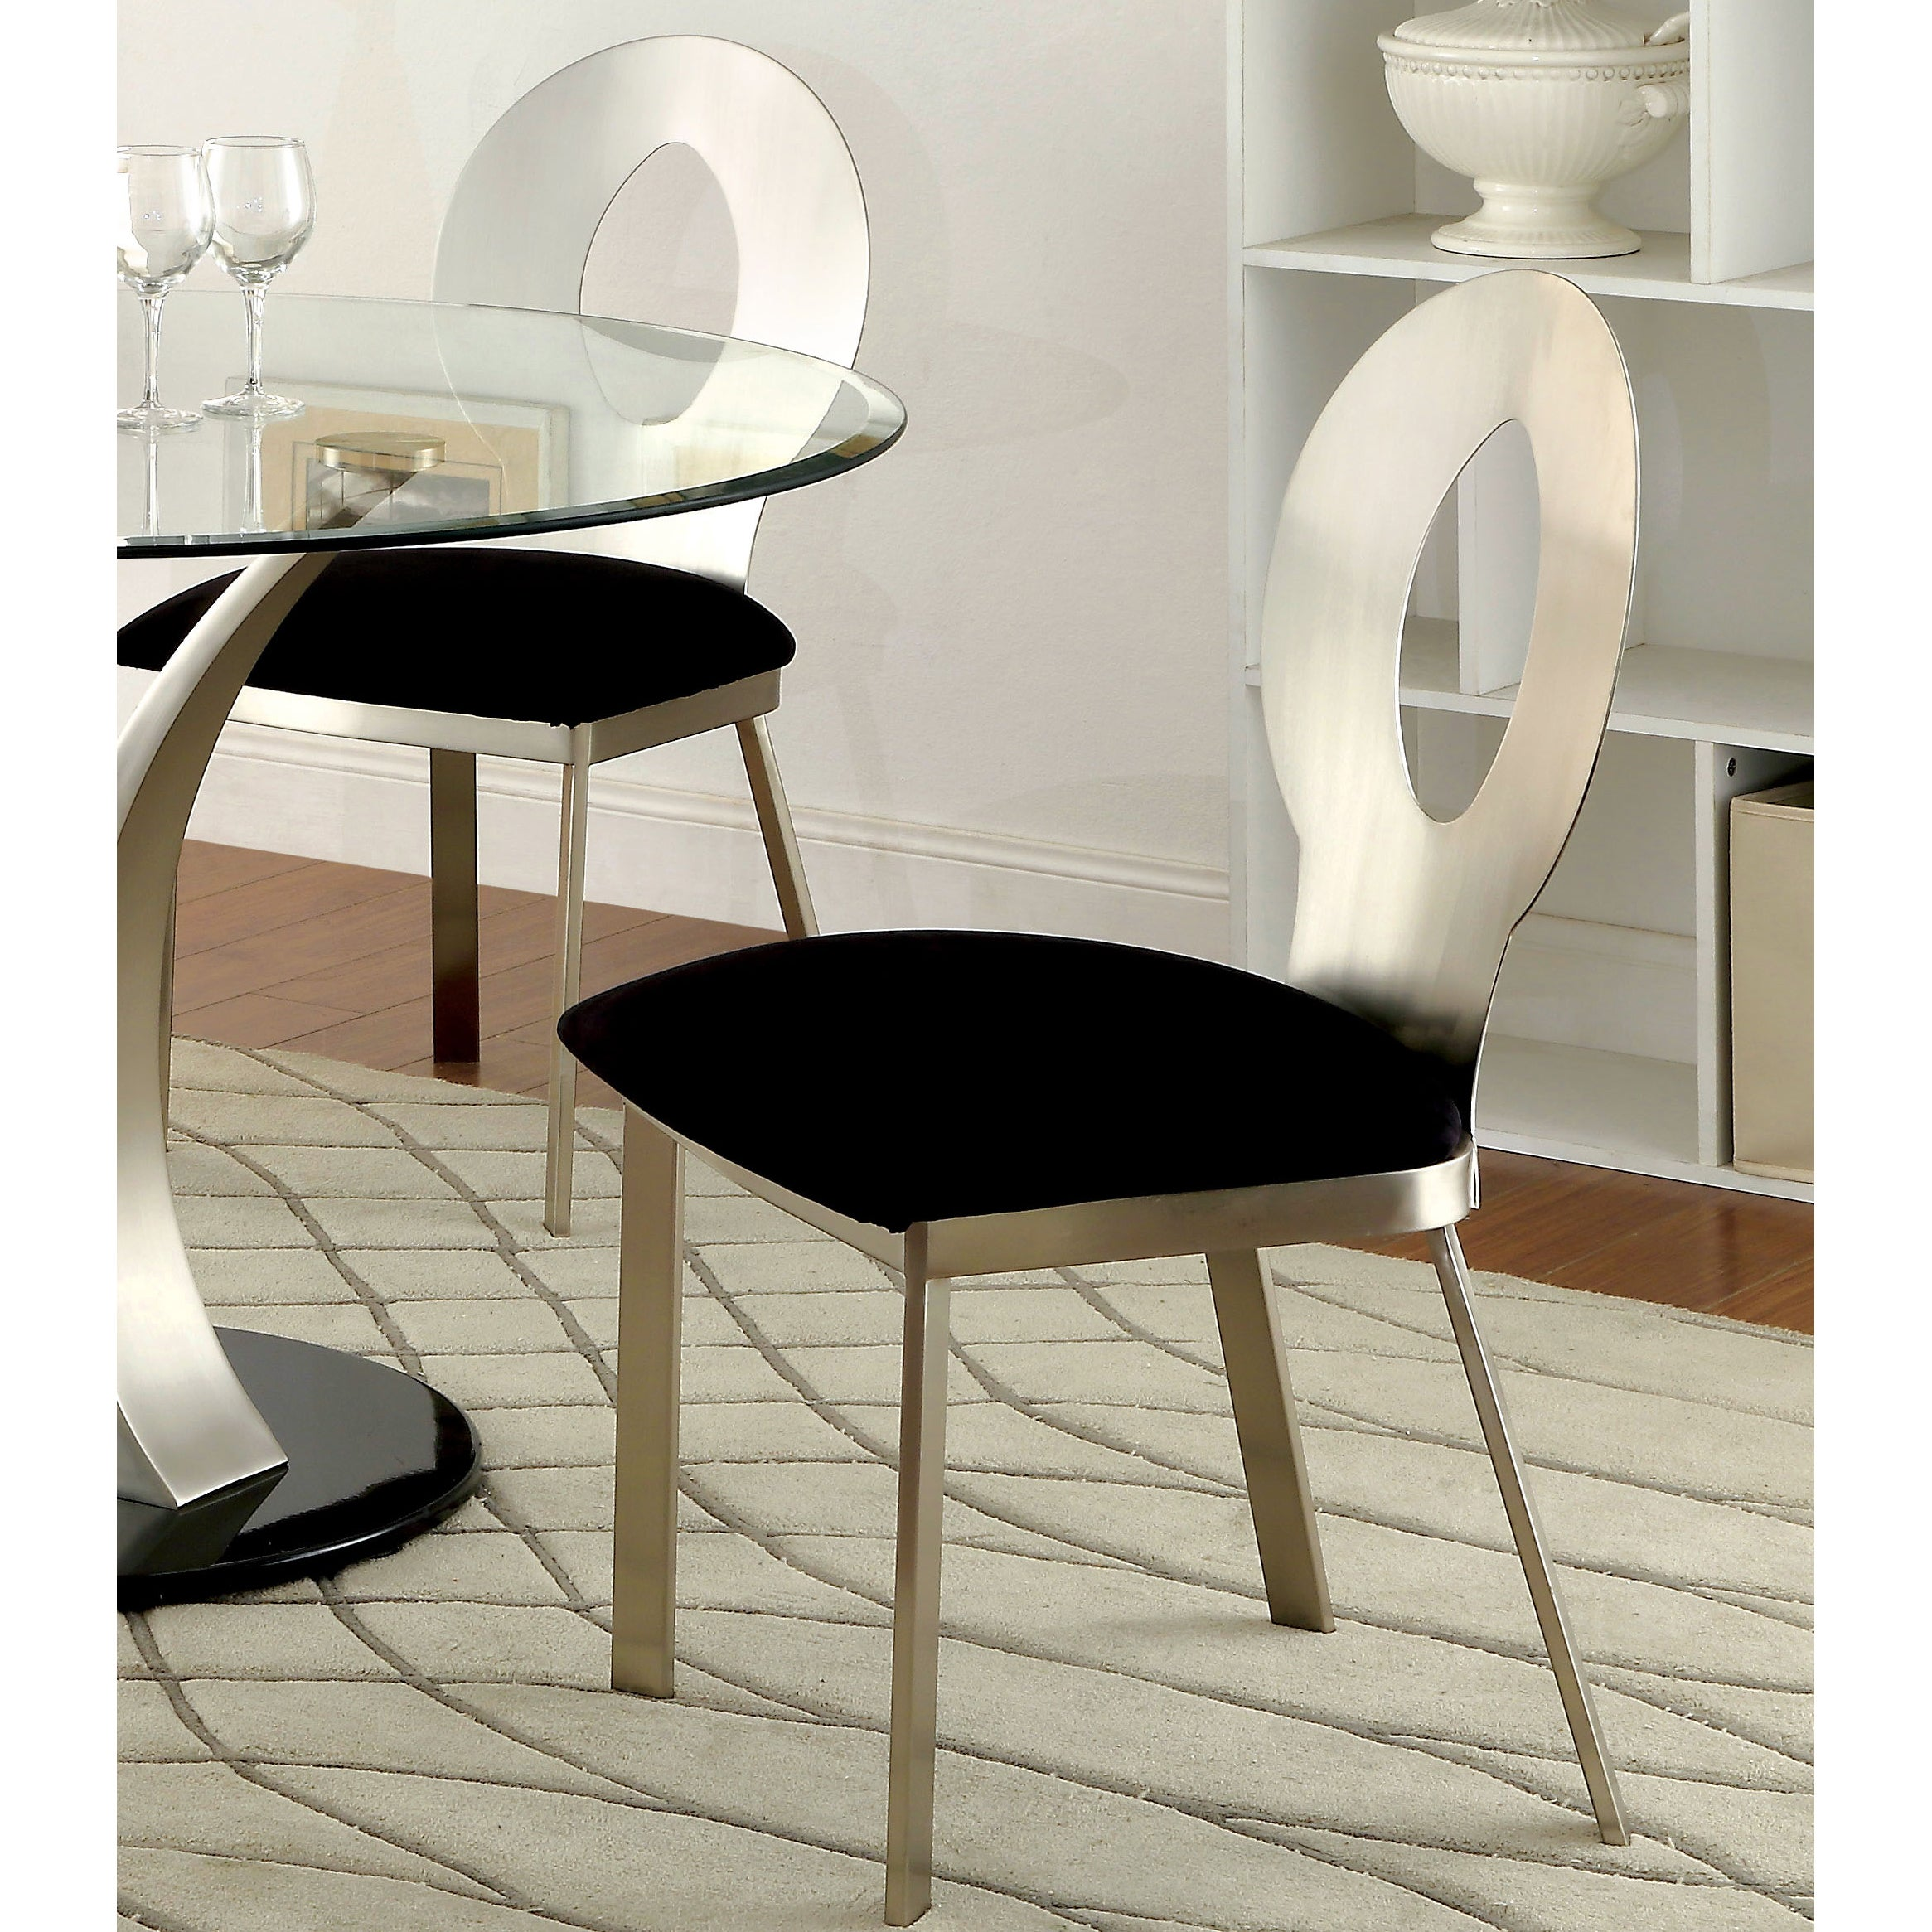 Sculpture III Contemporary Silver Dining Chair by FOA